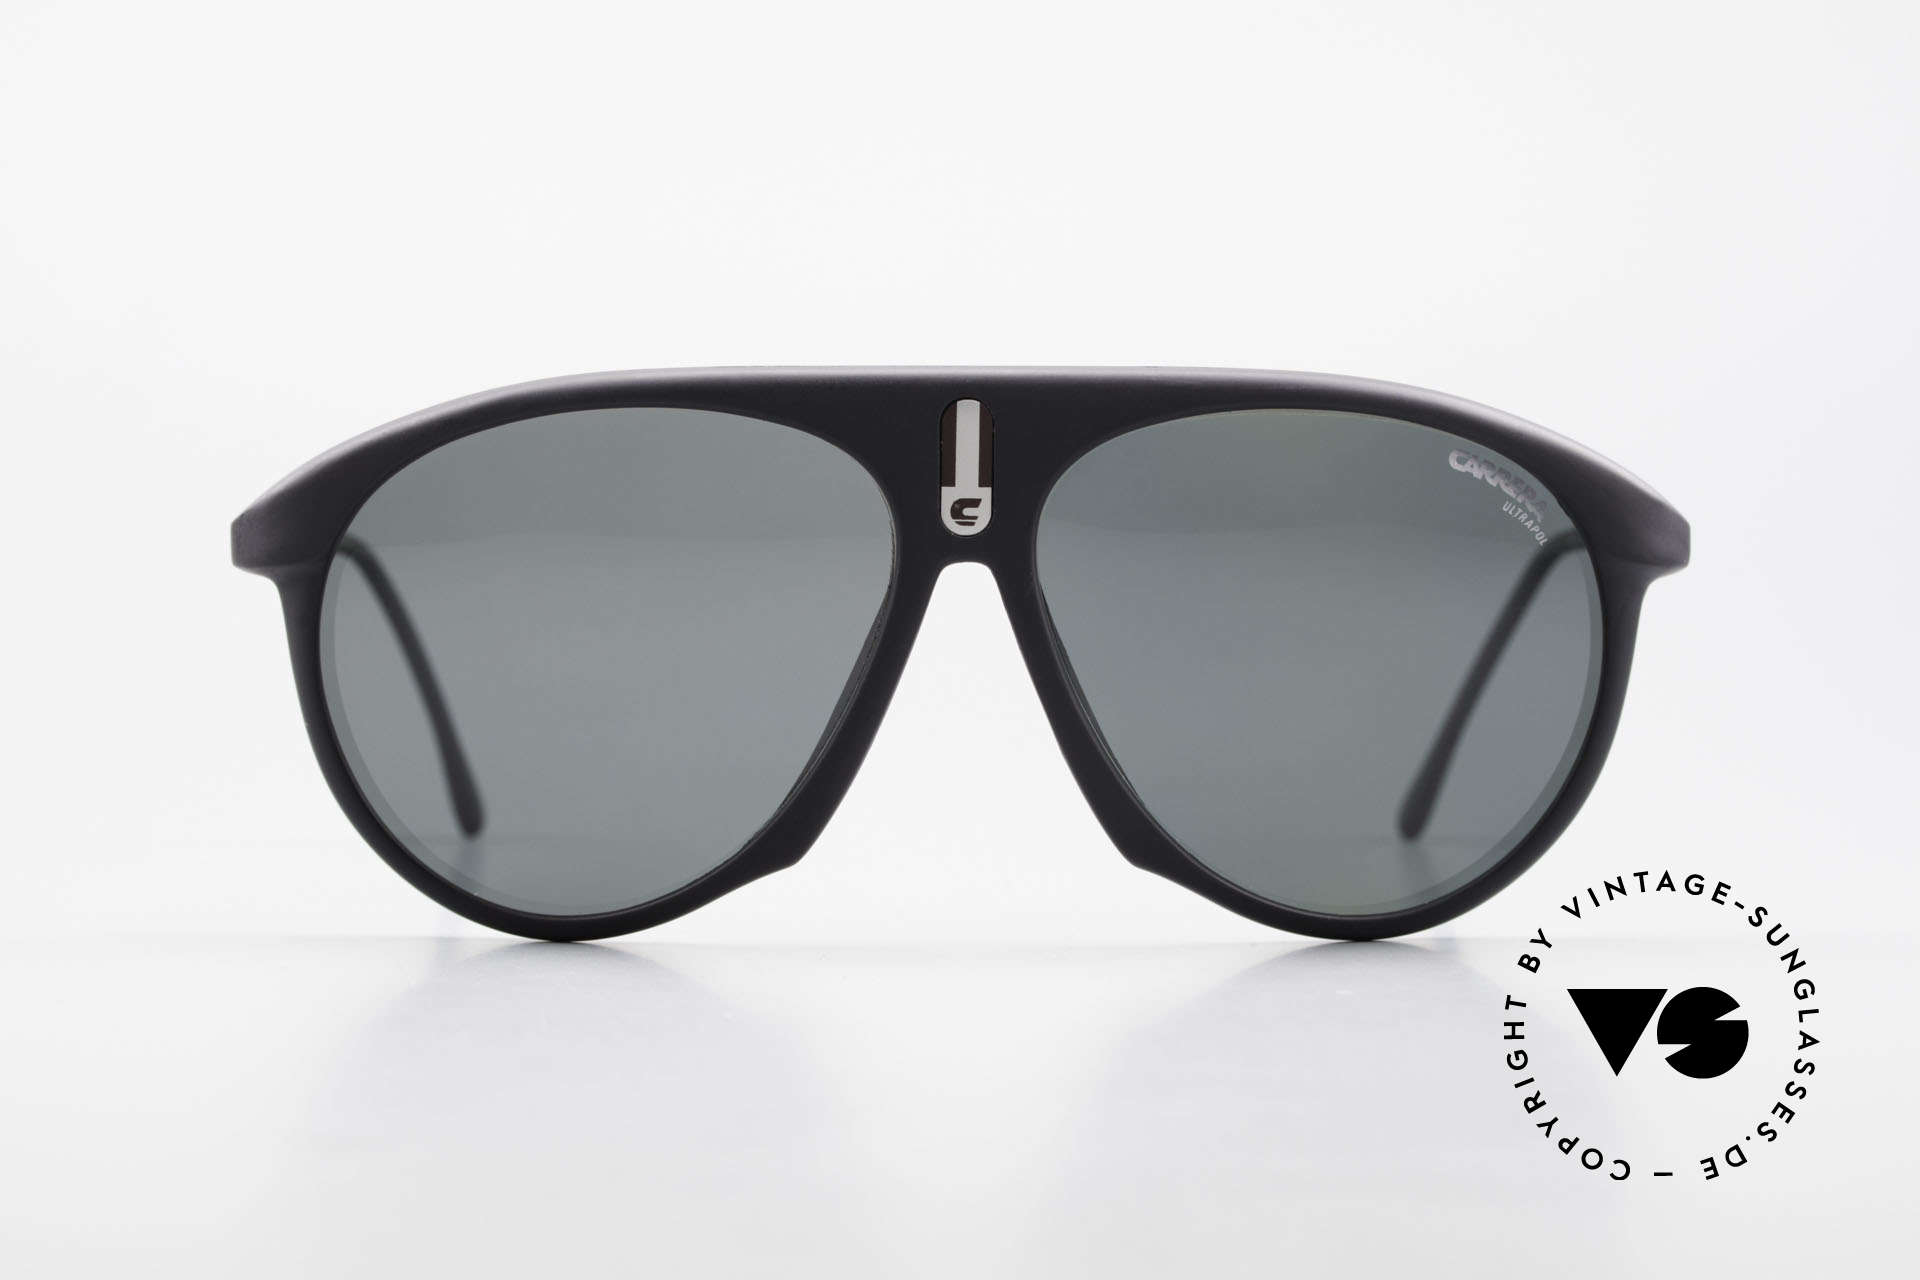 Carrera 5427 80's Polarized Sports Shades, lightweight synthetic frame = OPTYL material!, Made for Men and Women